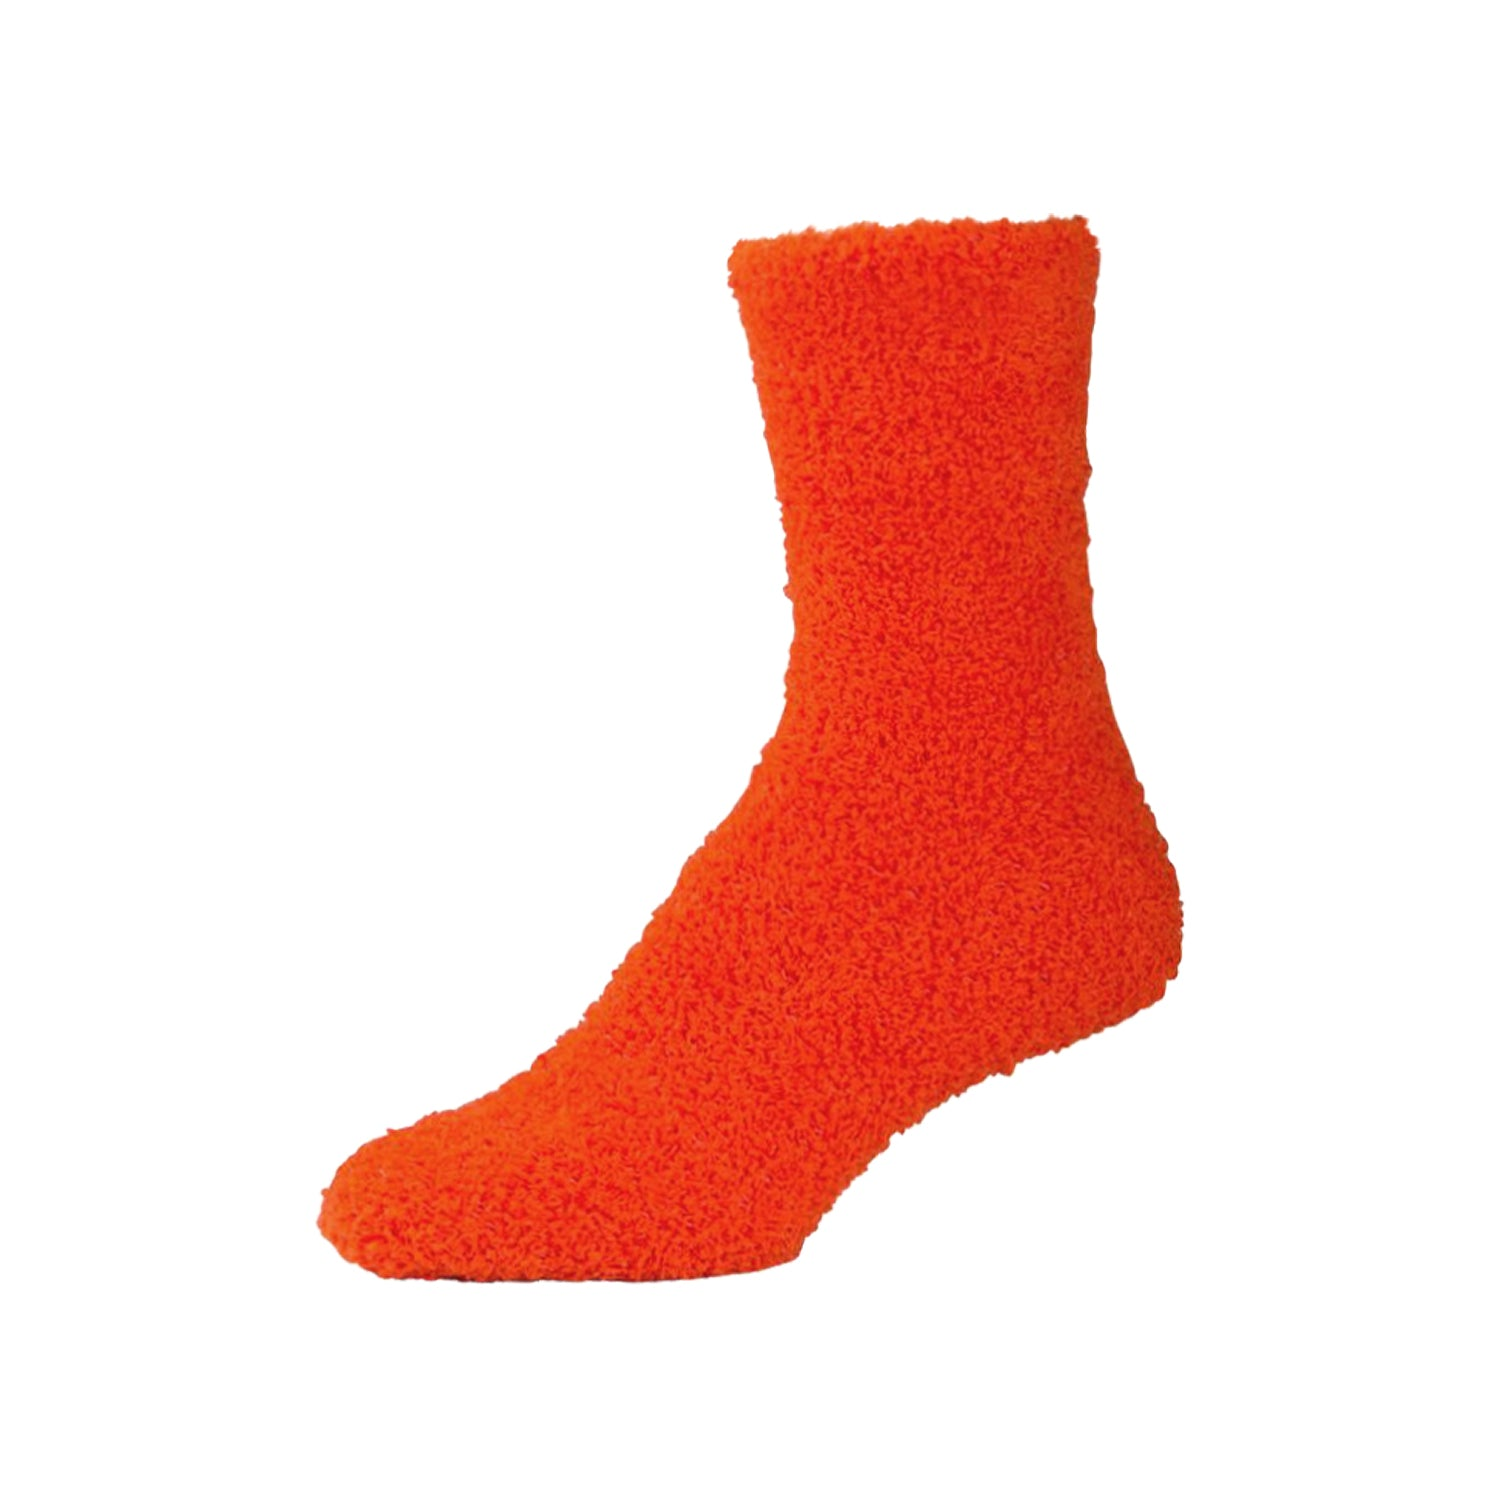 Womens Fluffy Dark Orange Fuzzy Socks